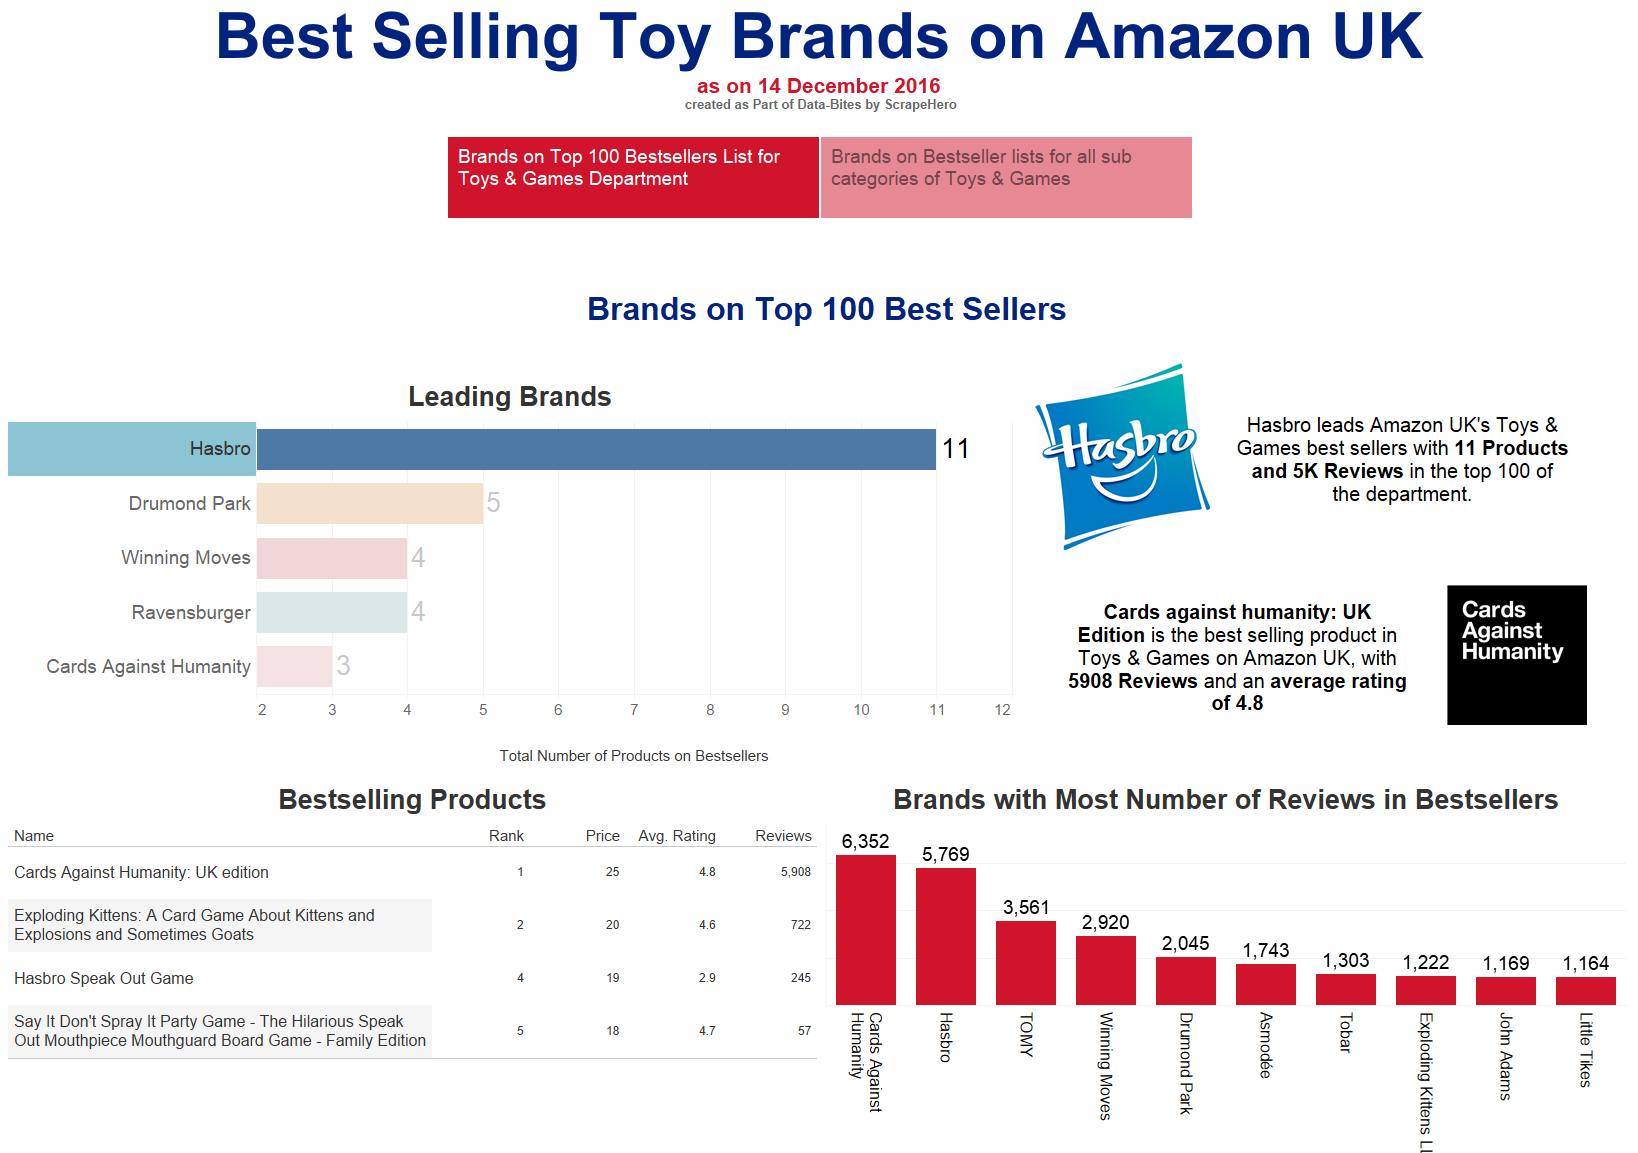 Bestselling Toy Brands on Amazon UK – December 2016